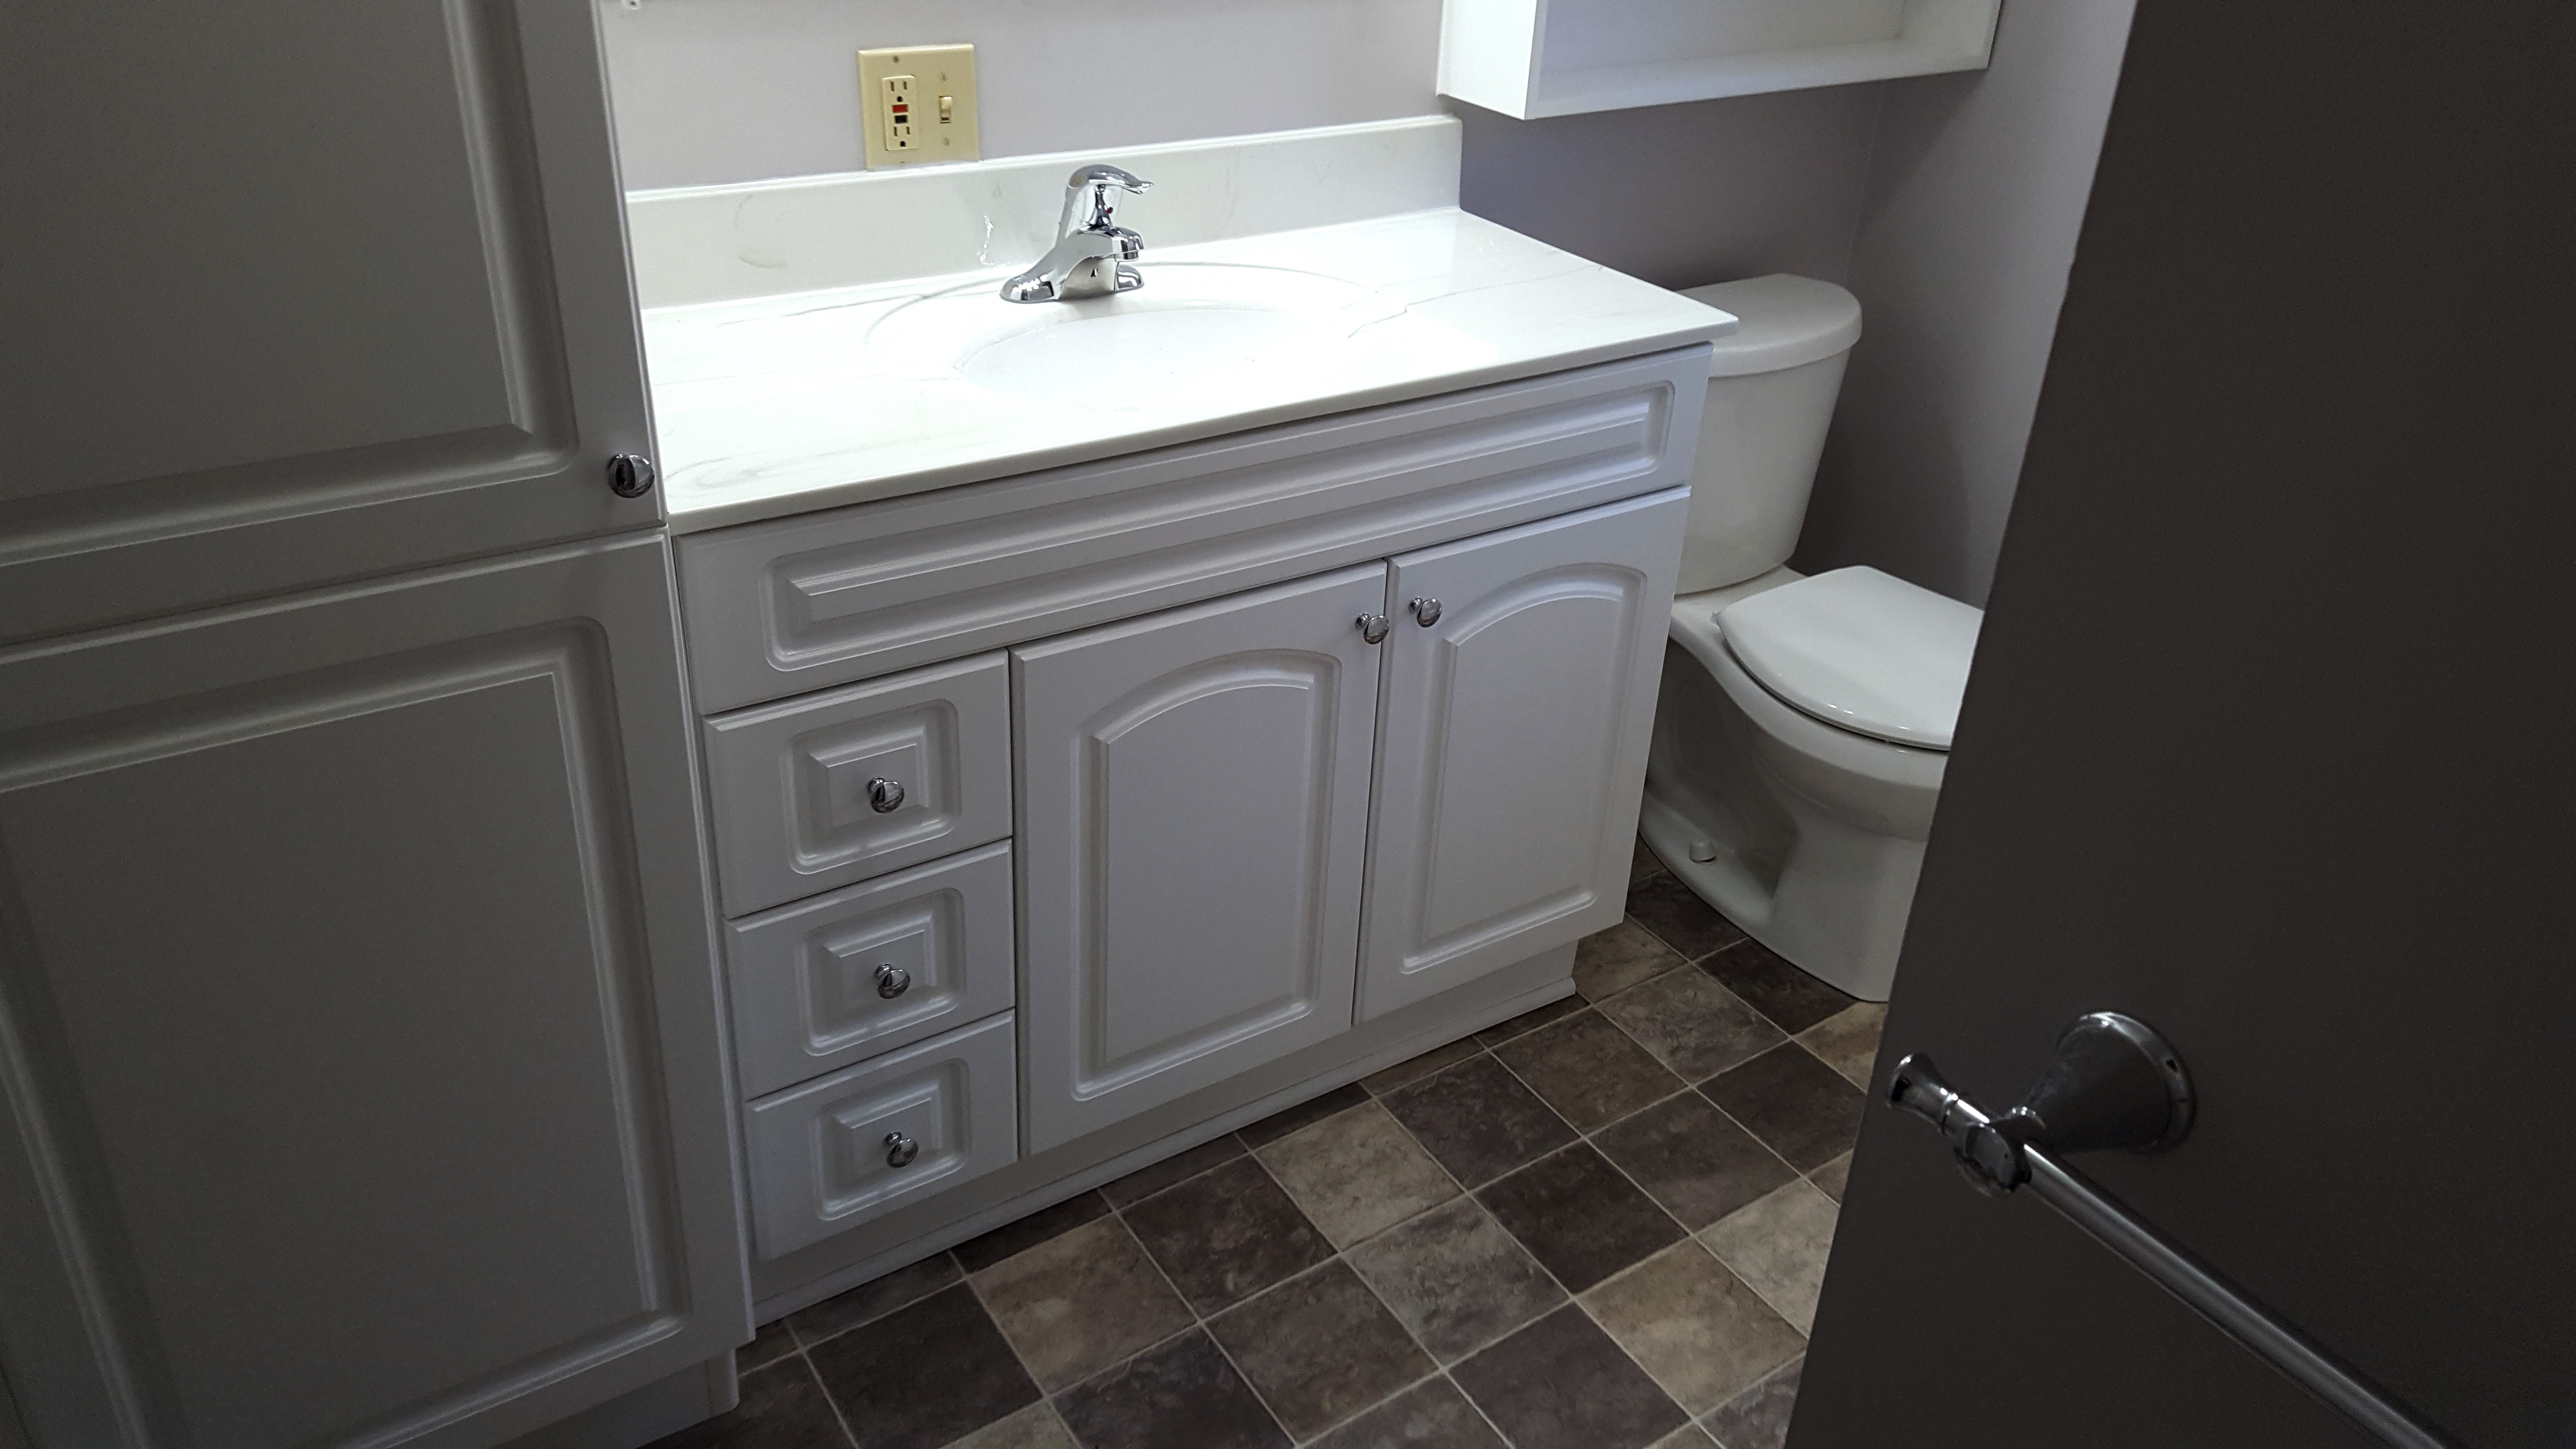 Full Bathroom Remodel Akron OH Quality Design Renovations LLC - Bathroom remodel cleveland